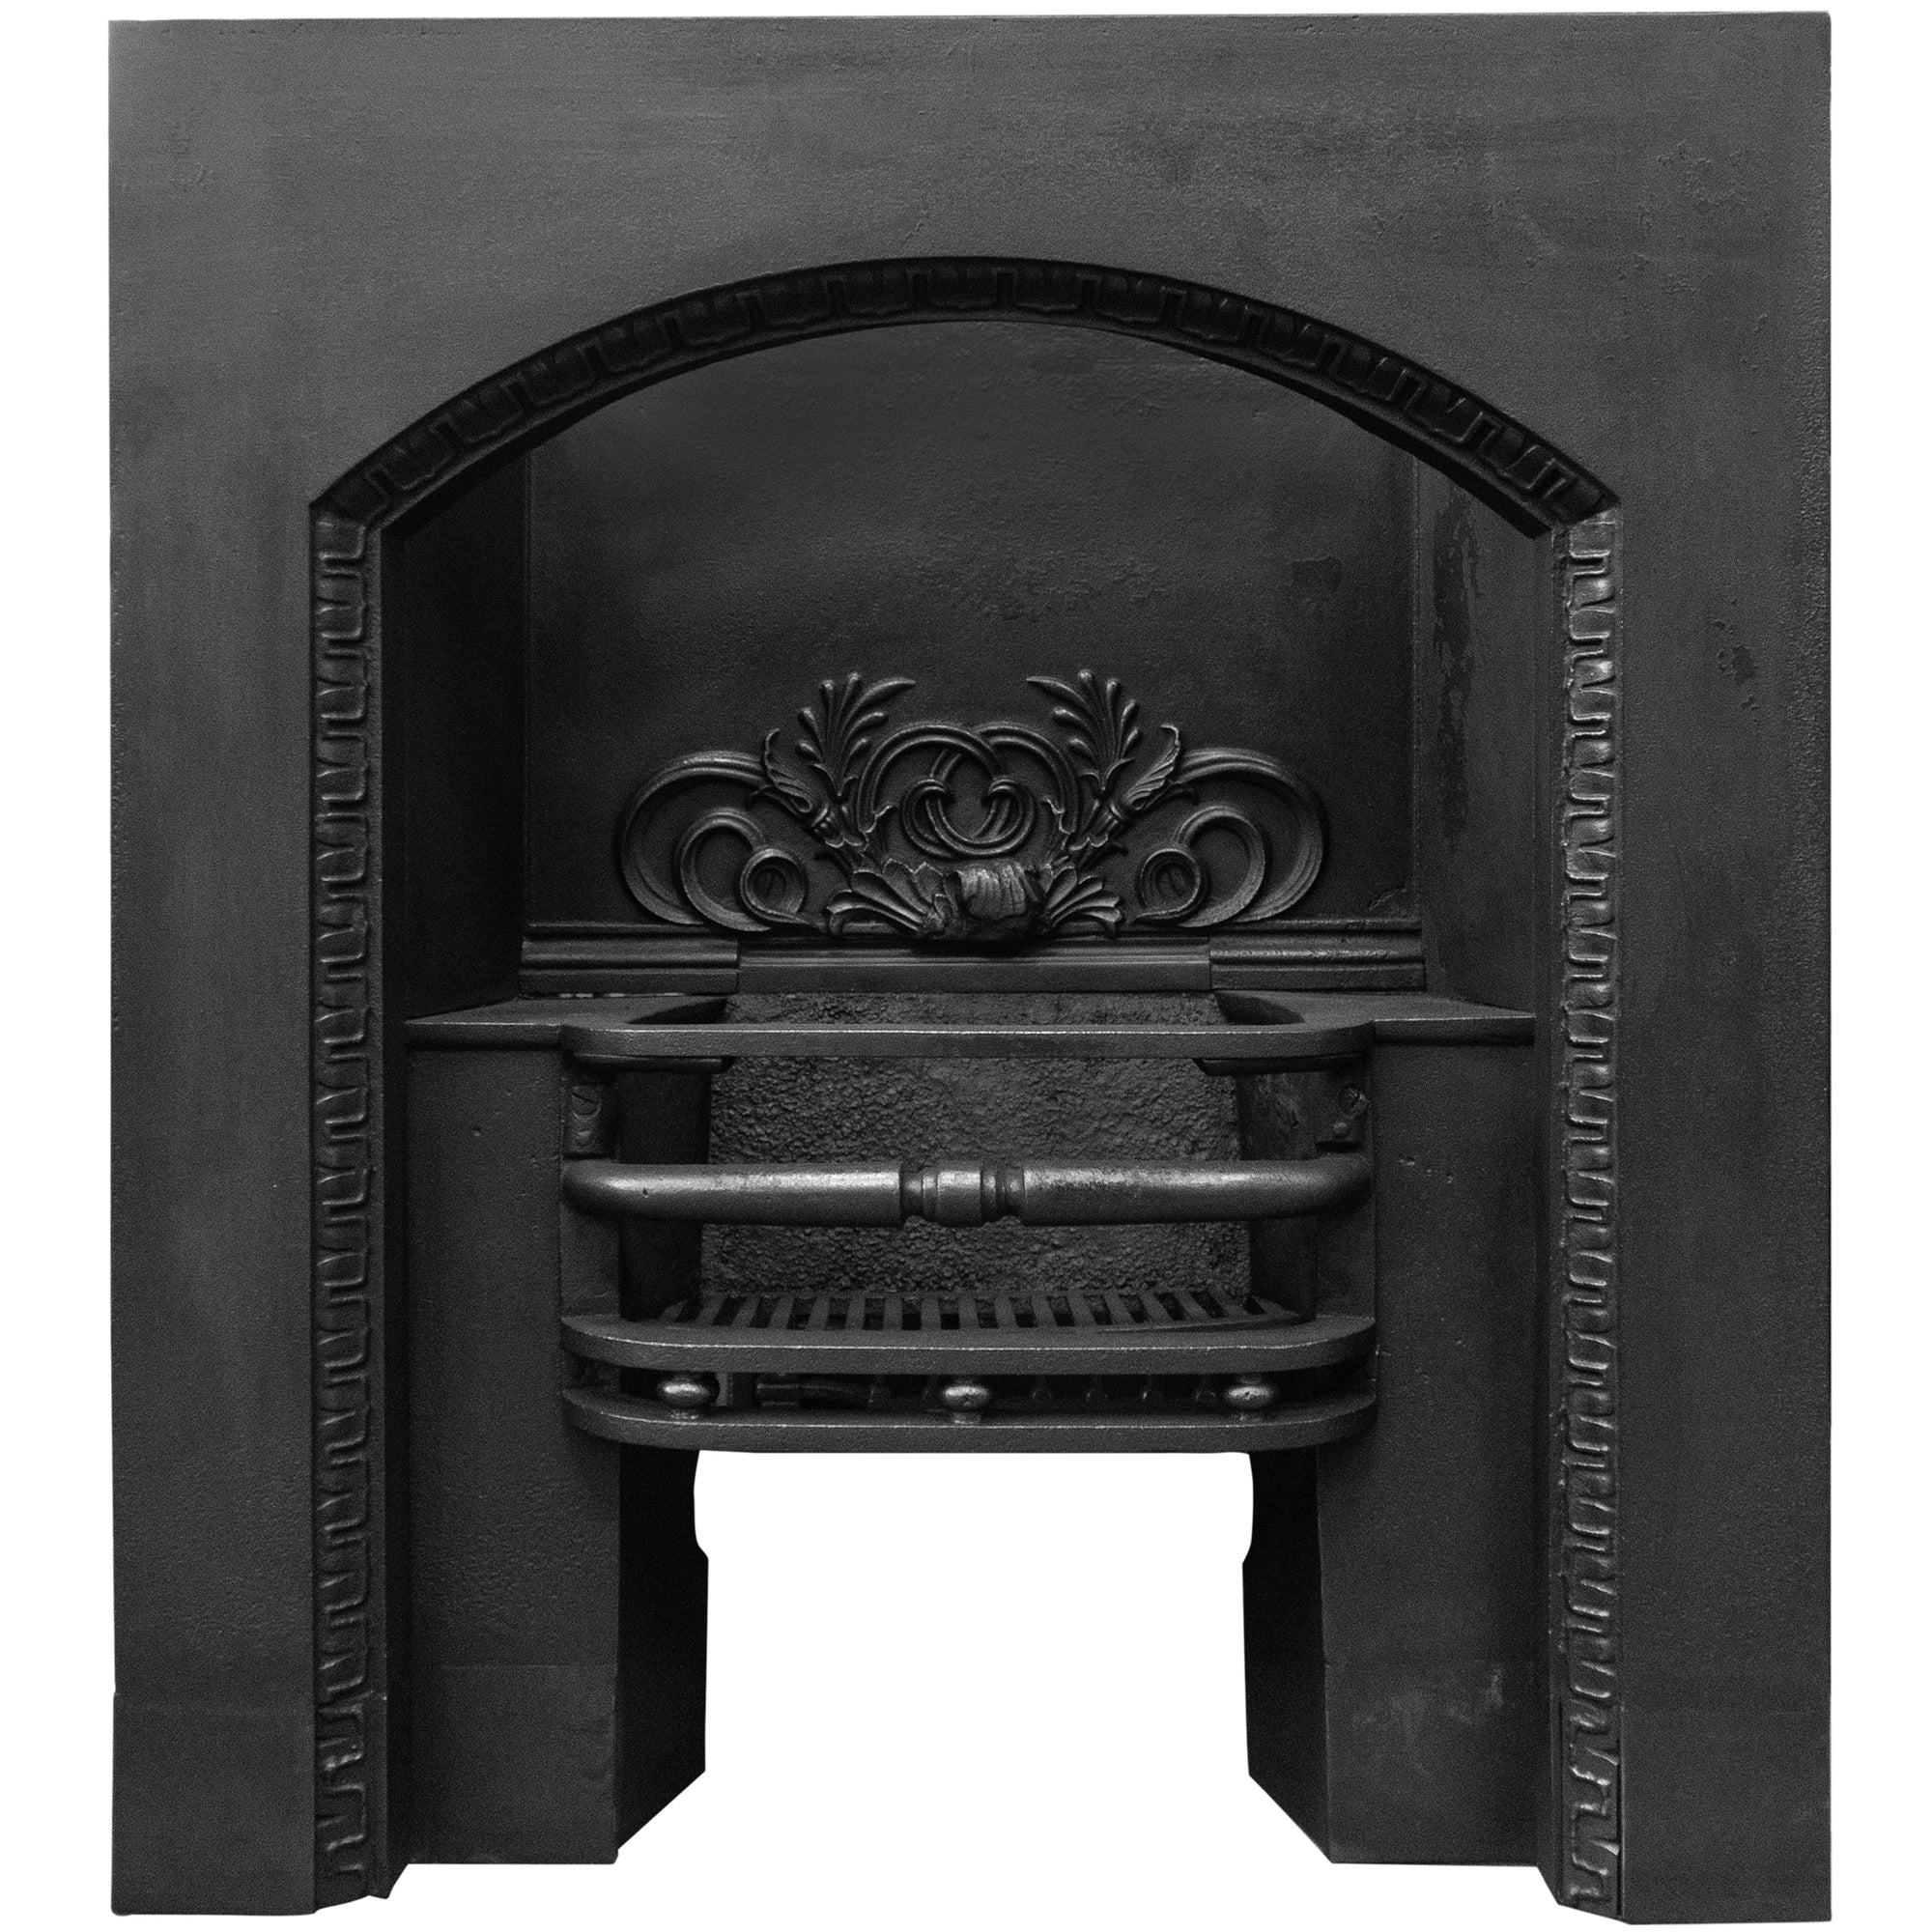 Antique Victorian Cast Iron Fireplace Insert (pair available) - The Architectural Forum